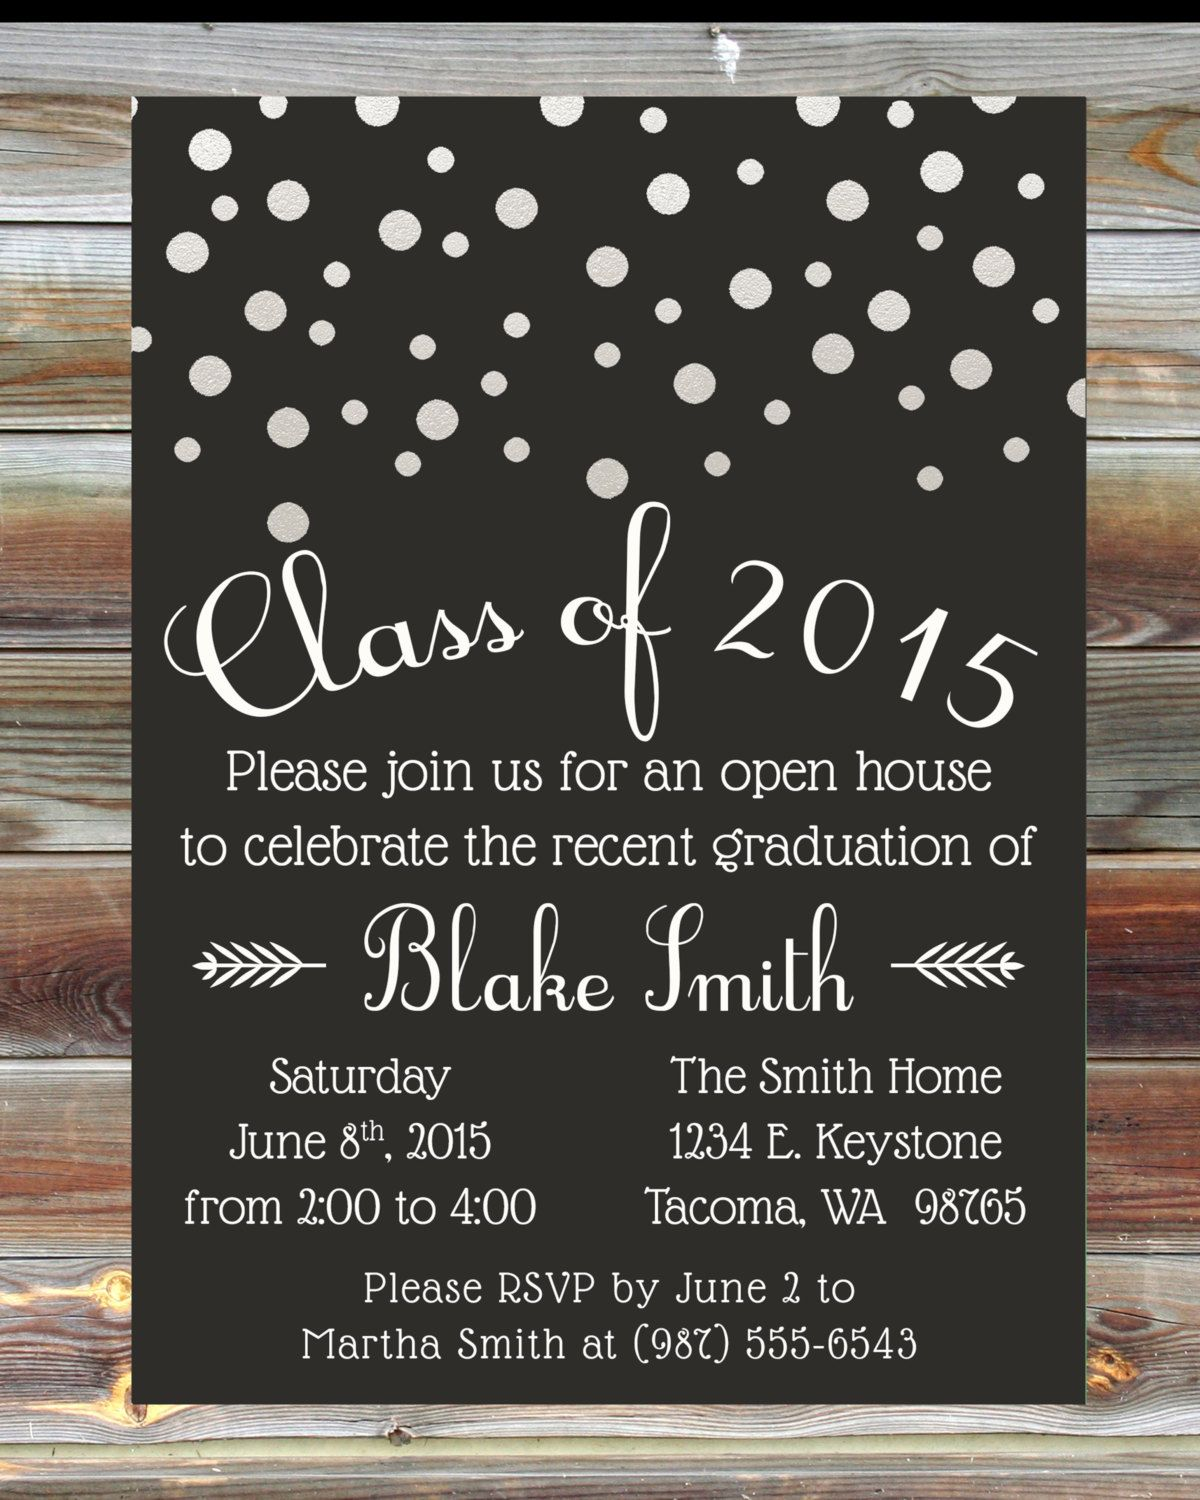 Custom Graduation Party Invitation Graduation Open House Invitation Champagne Grad Party Invite College High School Grad Party By Viabarrett On Etsy 졸업